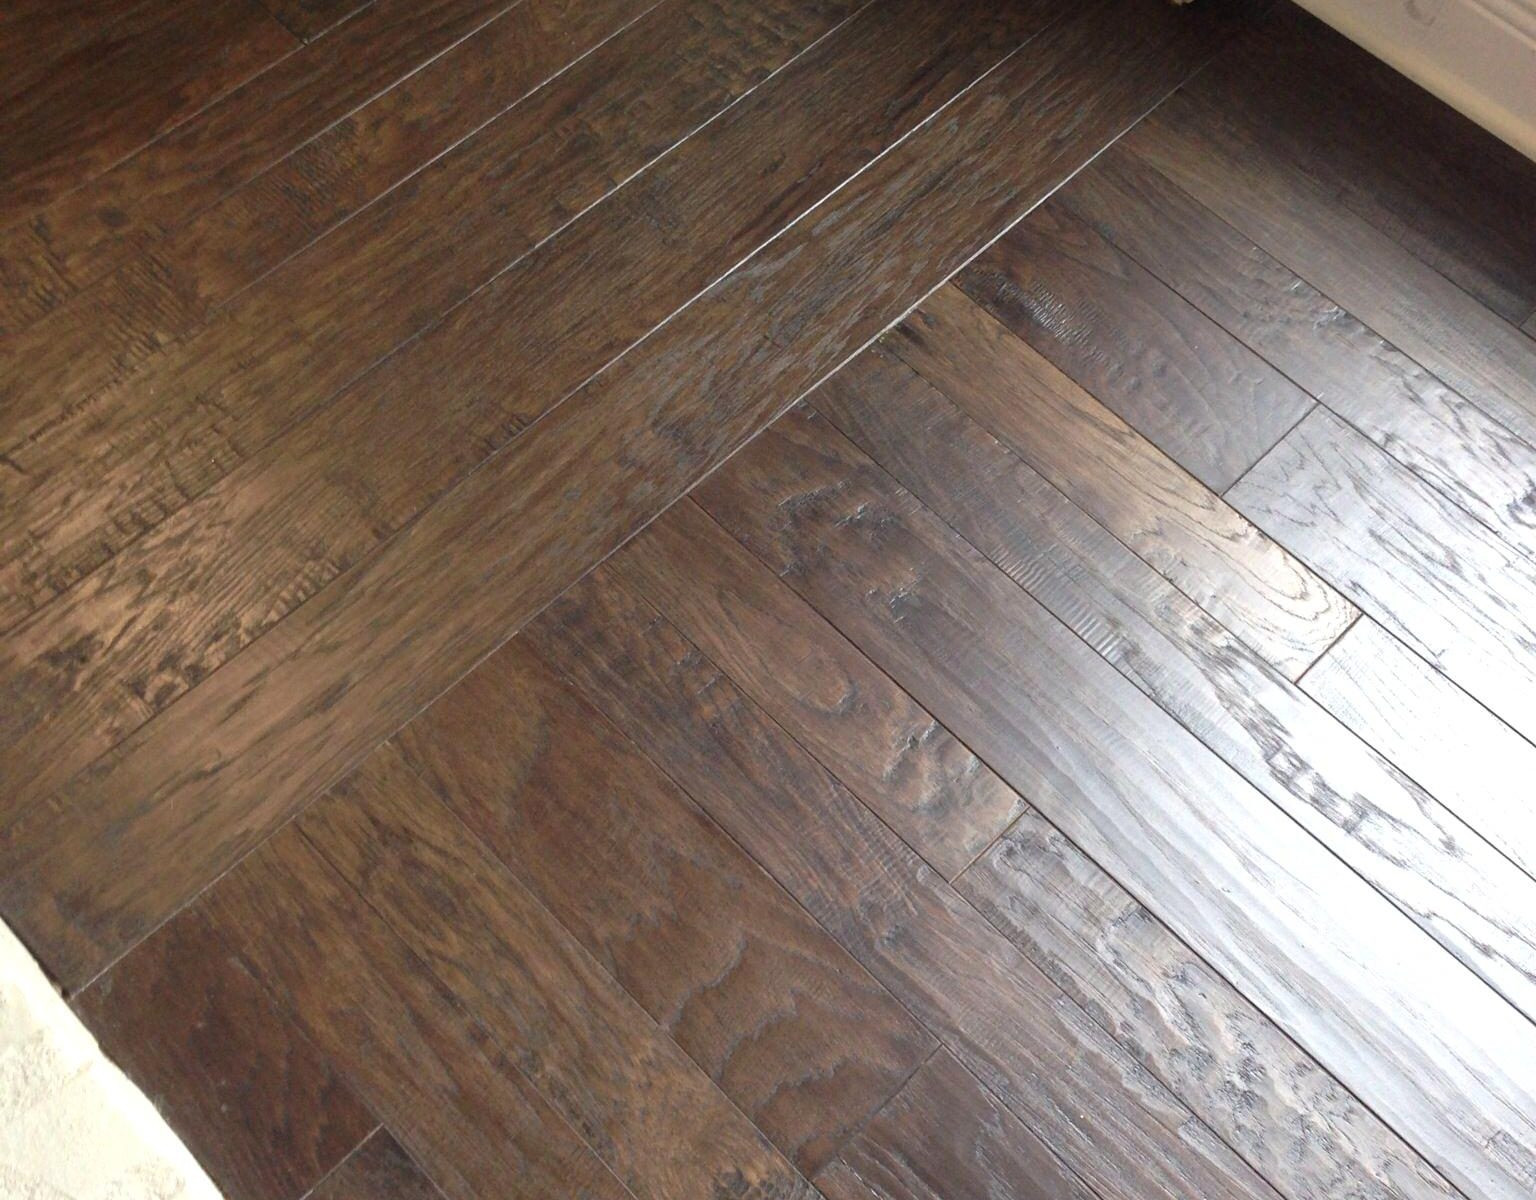 transition between tile and hardwood floor of an mooth transition hardwood flooring tile cakning home design with an mooth transition hardwood flooring tile